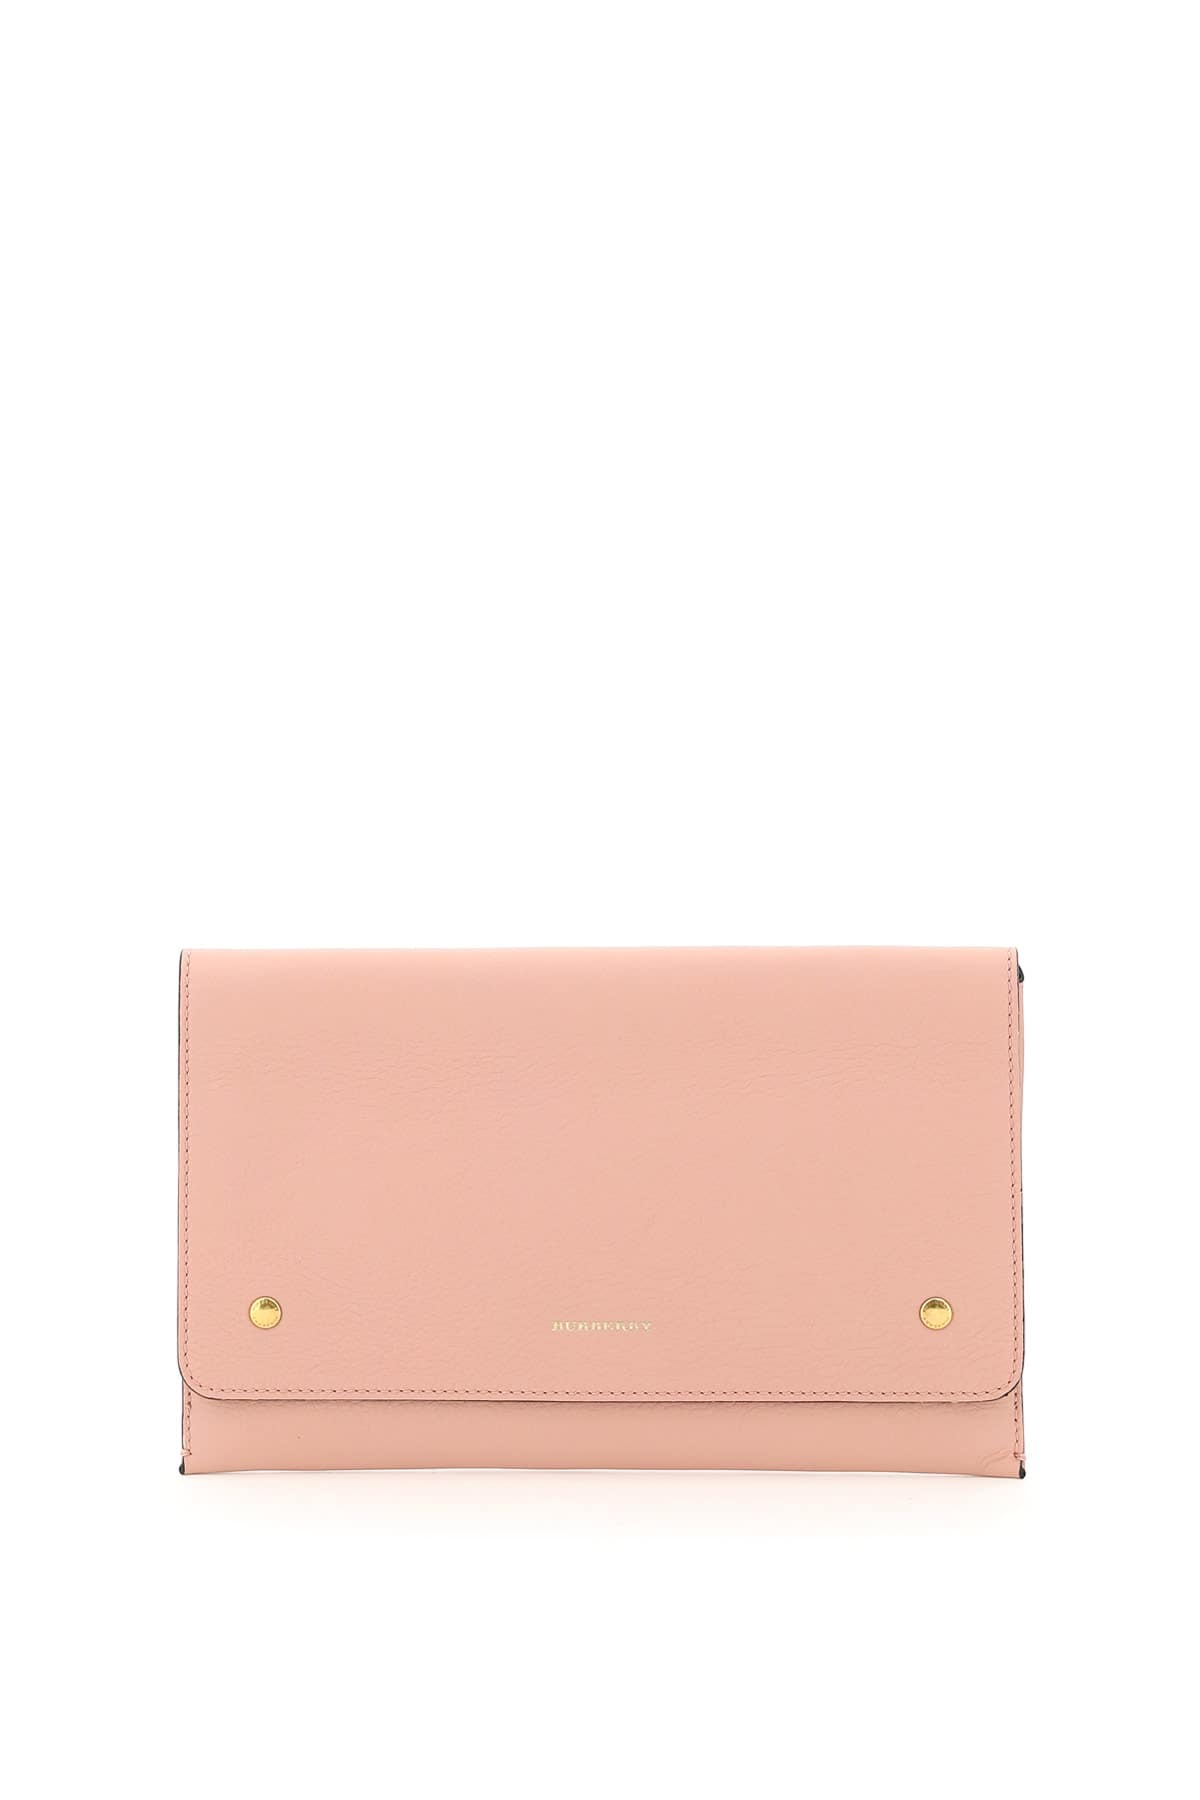 BURBERRY PEARSON LEATHER POUCH OS Pink Leather